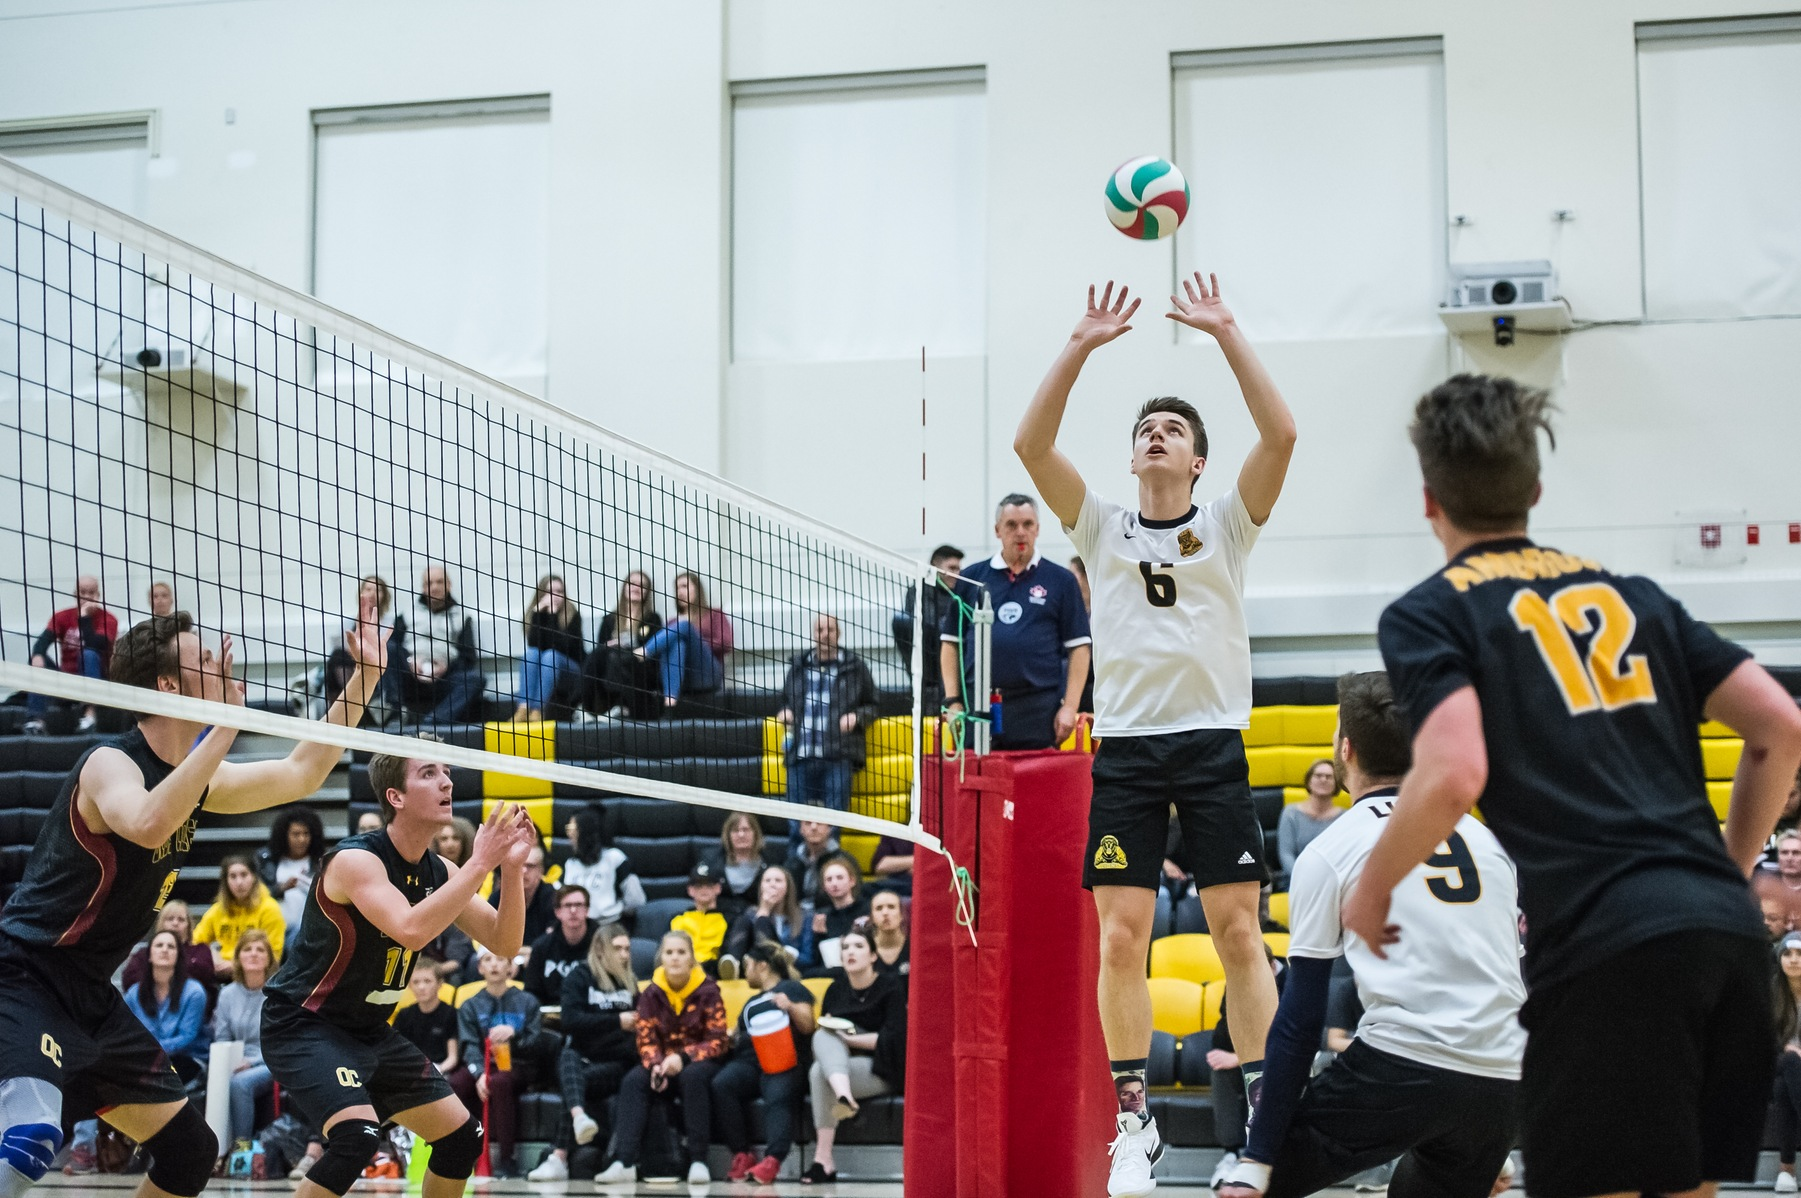 Lions Battle to the End In 5 Set Loss to Trojans